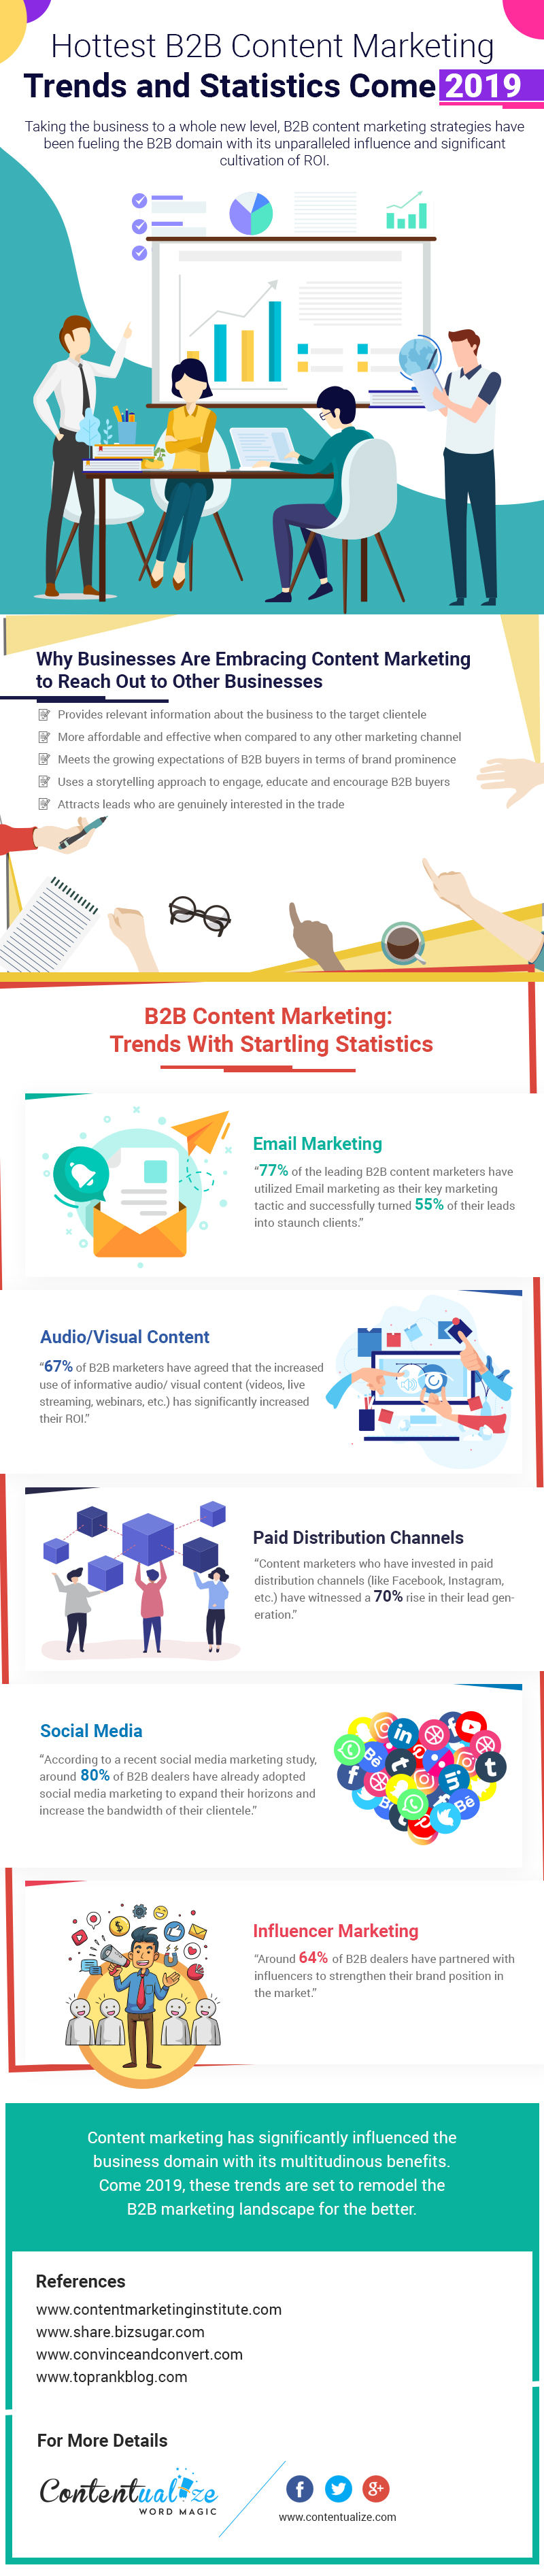 Hottest B2B Content Marketing Trends and Statistics in 2019 (Infographic)